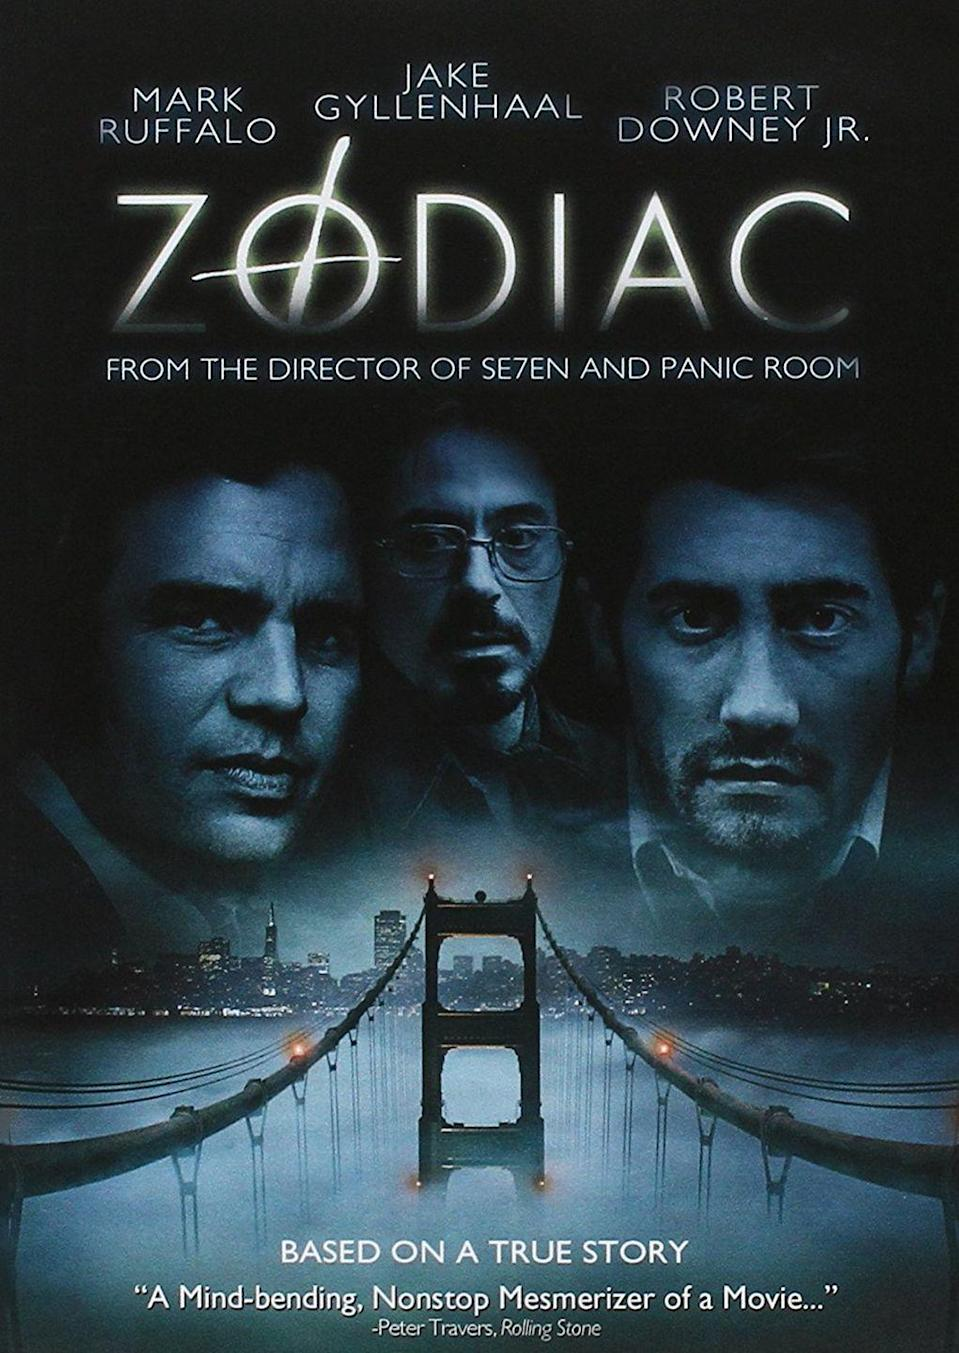 """<p><a class=""""link rapid-noclick-resp"""" href=""""https://www.amazon.com/Zodiac-Robert-Jr-Downey/dp/B06XGSXD9R/?tag=syn-yahoo-20&ascsubtag=%5Bartid%7C10067.g.15907978%5Bsrc%7Cyahoo-us"""" rel=""""nofollow noopener"""" target=""""_blank"""" data-ylk=""""slk:Watch Now"""">Watch Now</a> </p><p>Starring Mark Ruffalo, Anthony Edwards, Robert Downey Jr., and Jake Gyllenhaal, this twisty, disconcerting mystery-thriller follows the investigation into the identity of the infamous 1960s Zodiac killer in San Francisco. </p>"""